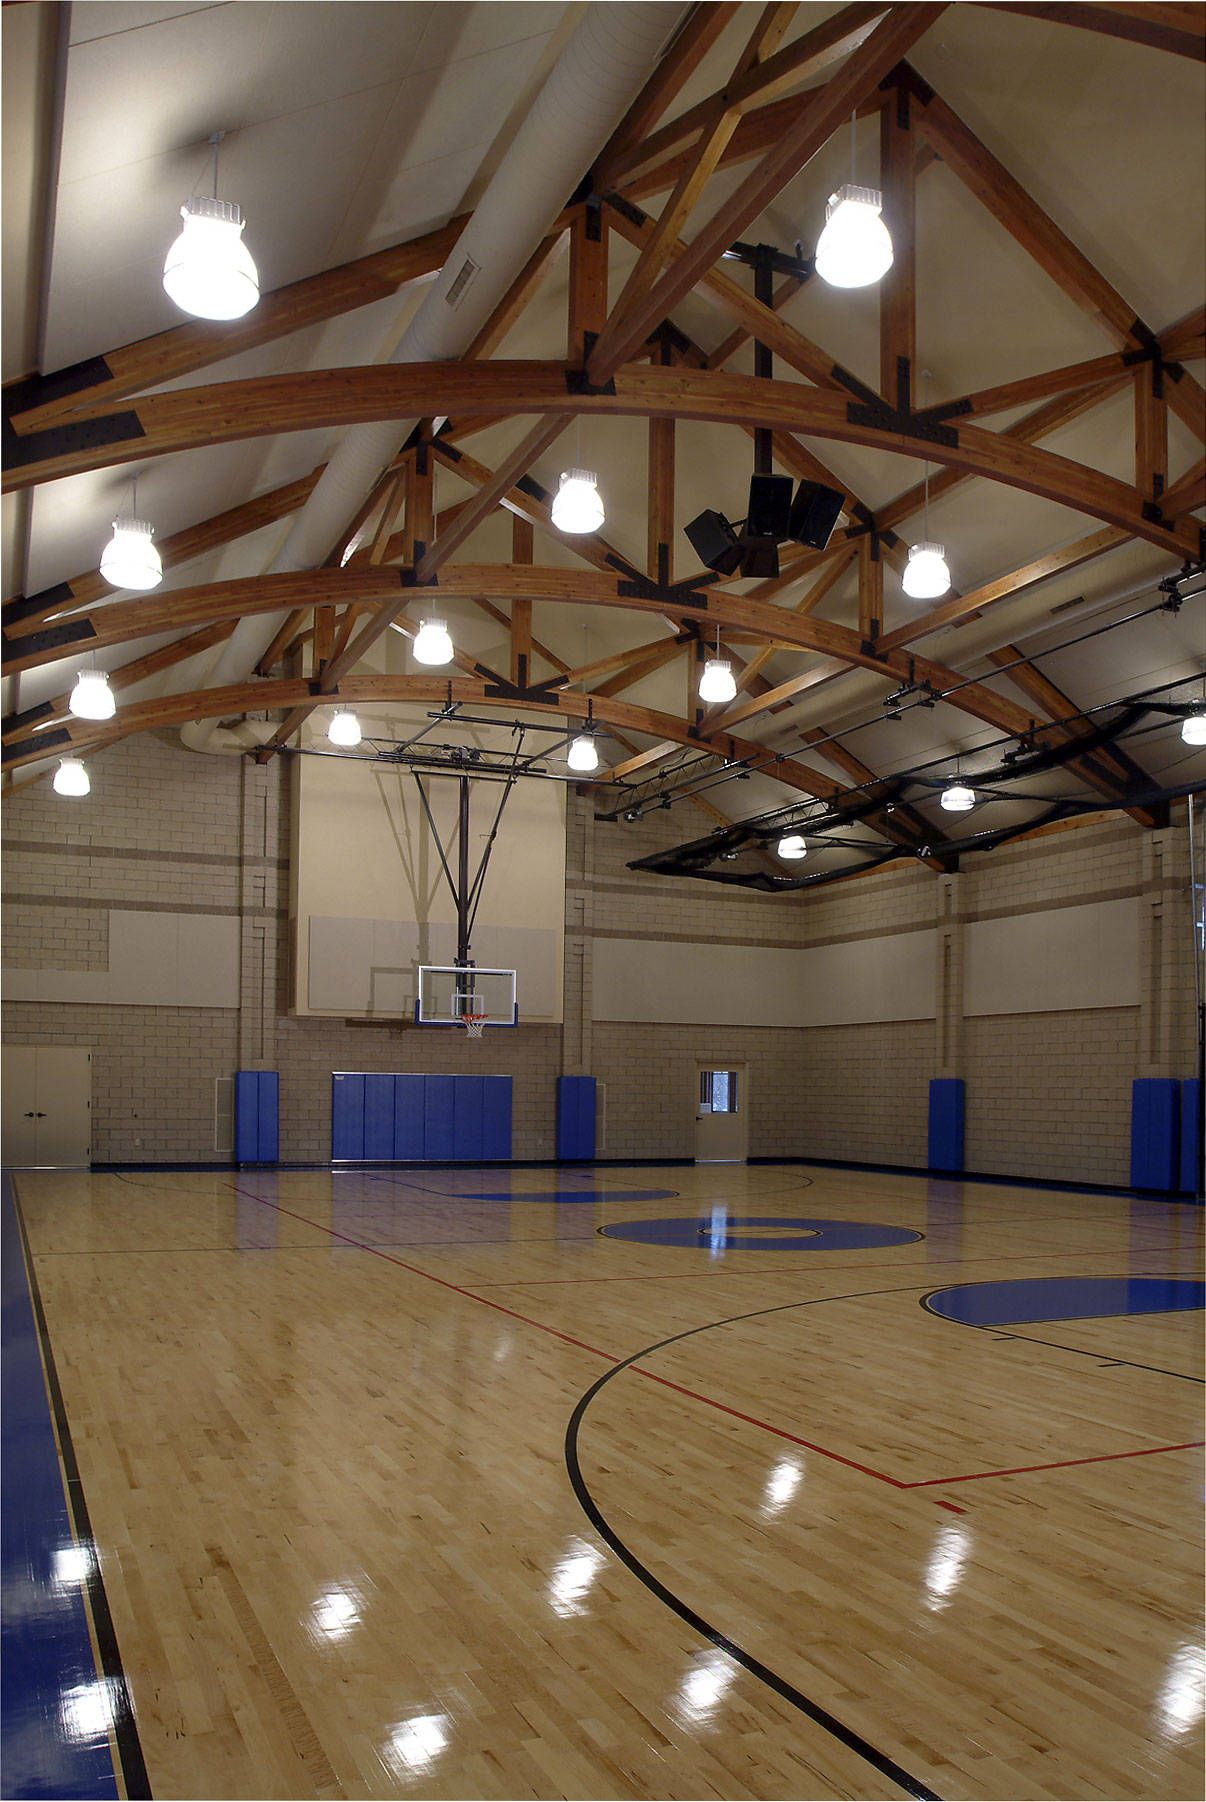 36 Home Gym Designs And Ideas Home Homedesign Homedesignideas Homedecorideas Homedecor Decor Home Gym Design Traditional House Indoor Basketball Court